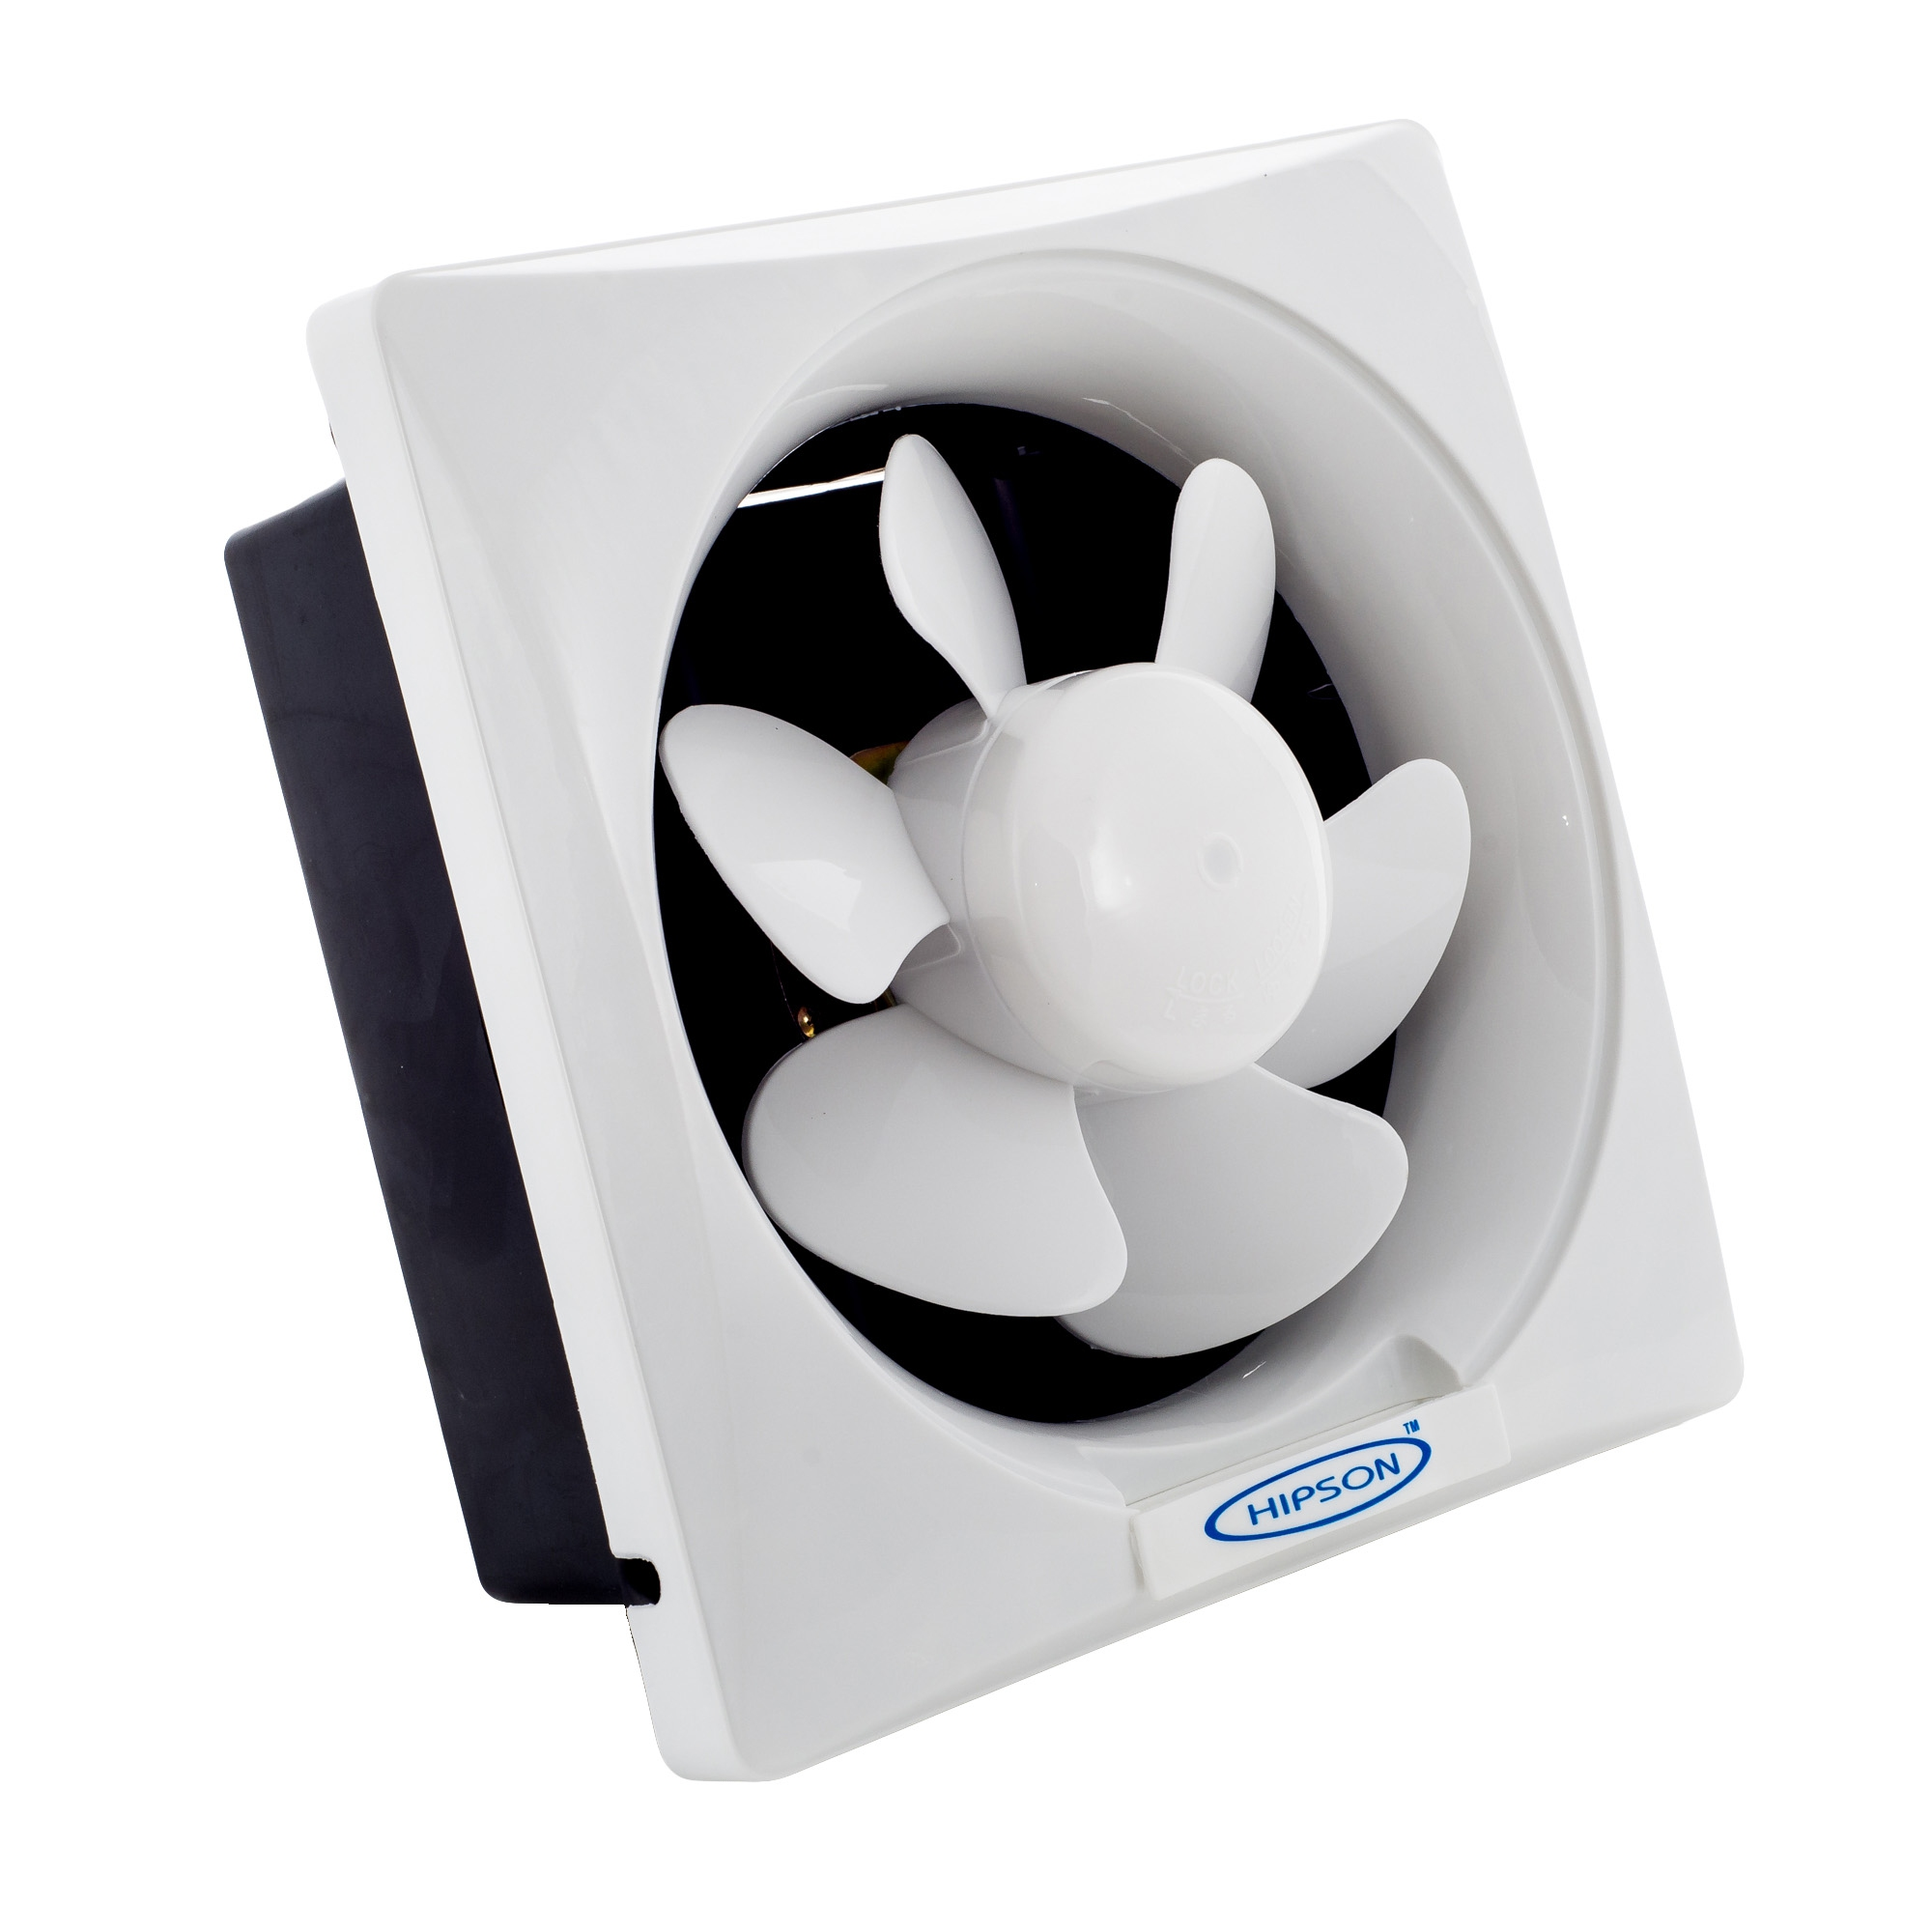 HIPSON 8' PVC Exhaust Fan- Wall Type